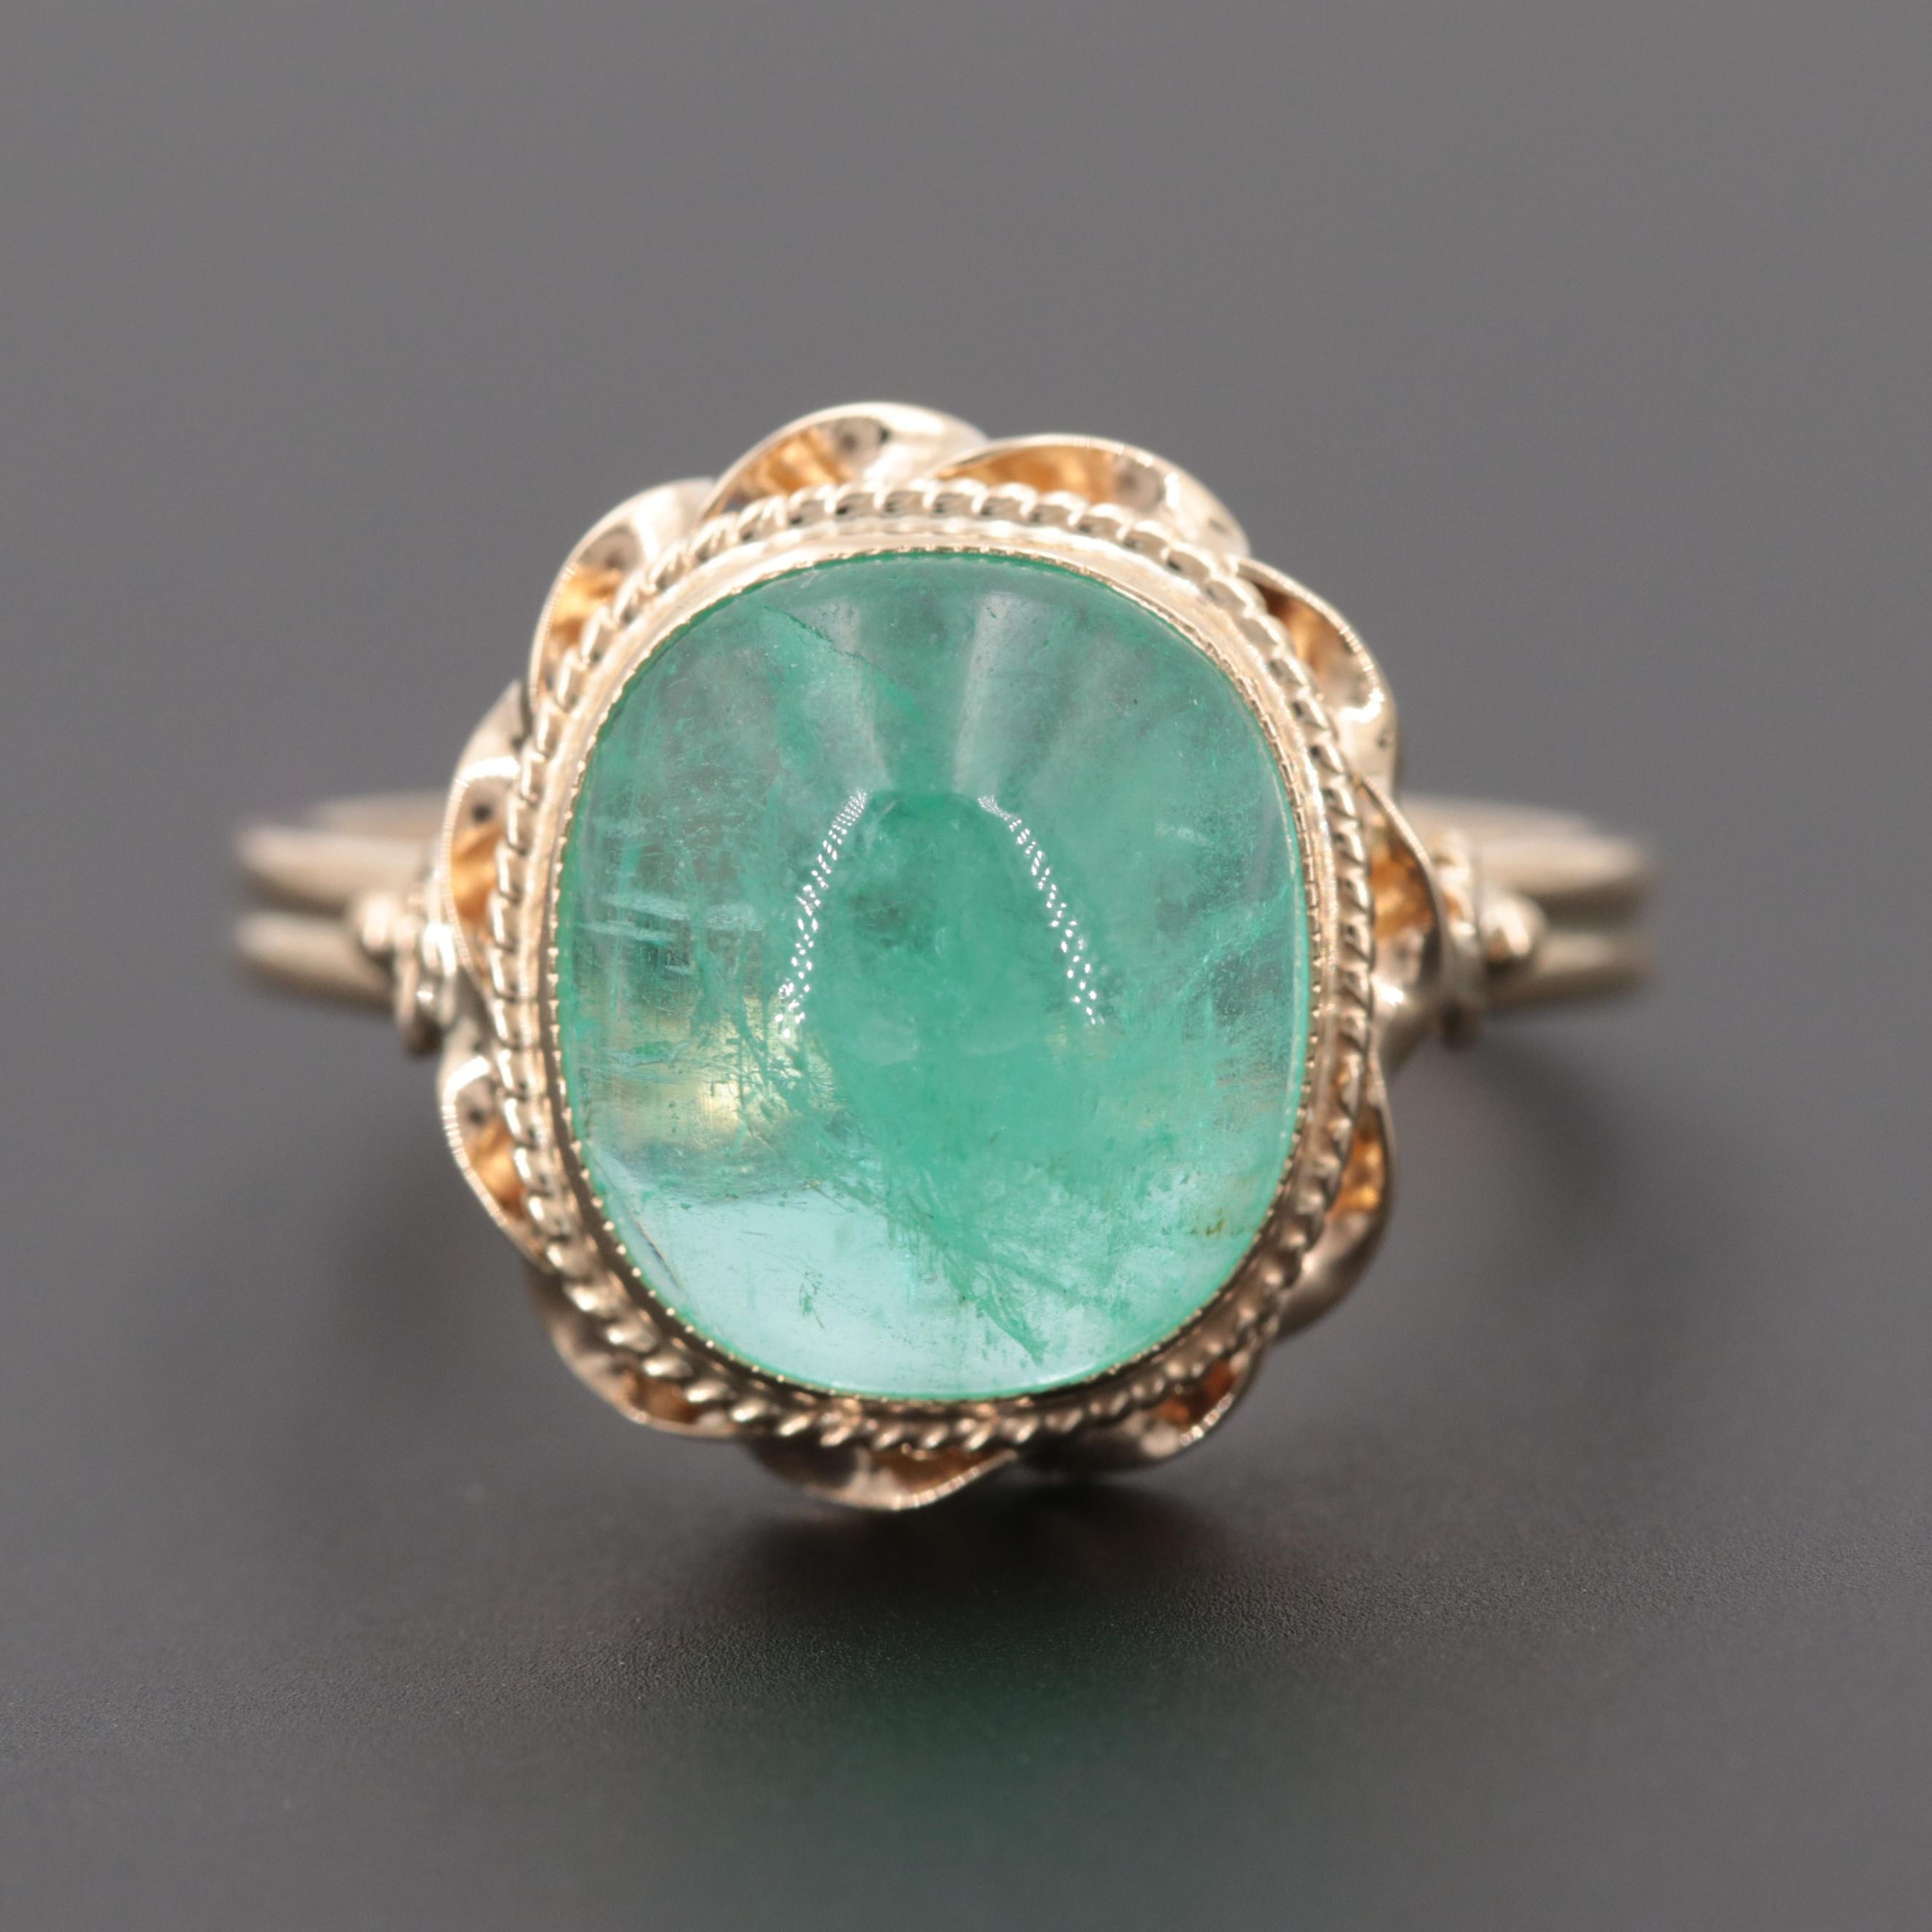 14K Yellow Gold 5.18 CT Emerald Ring